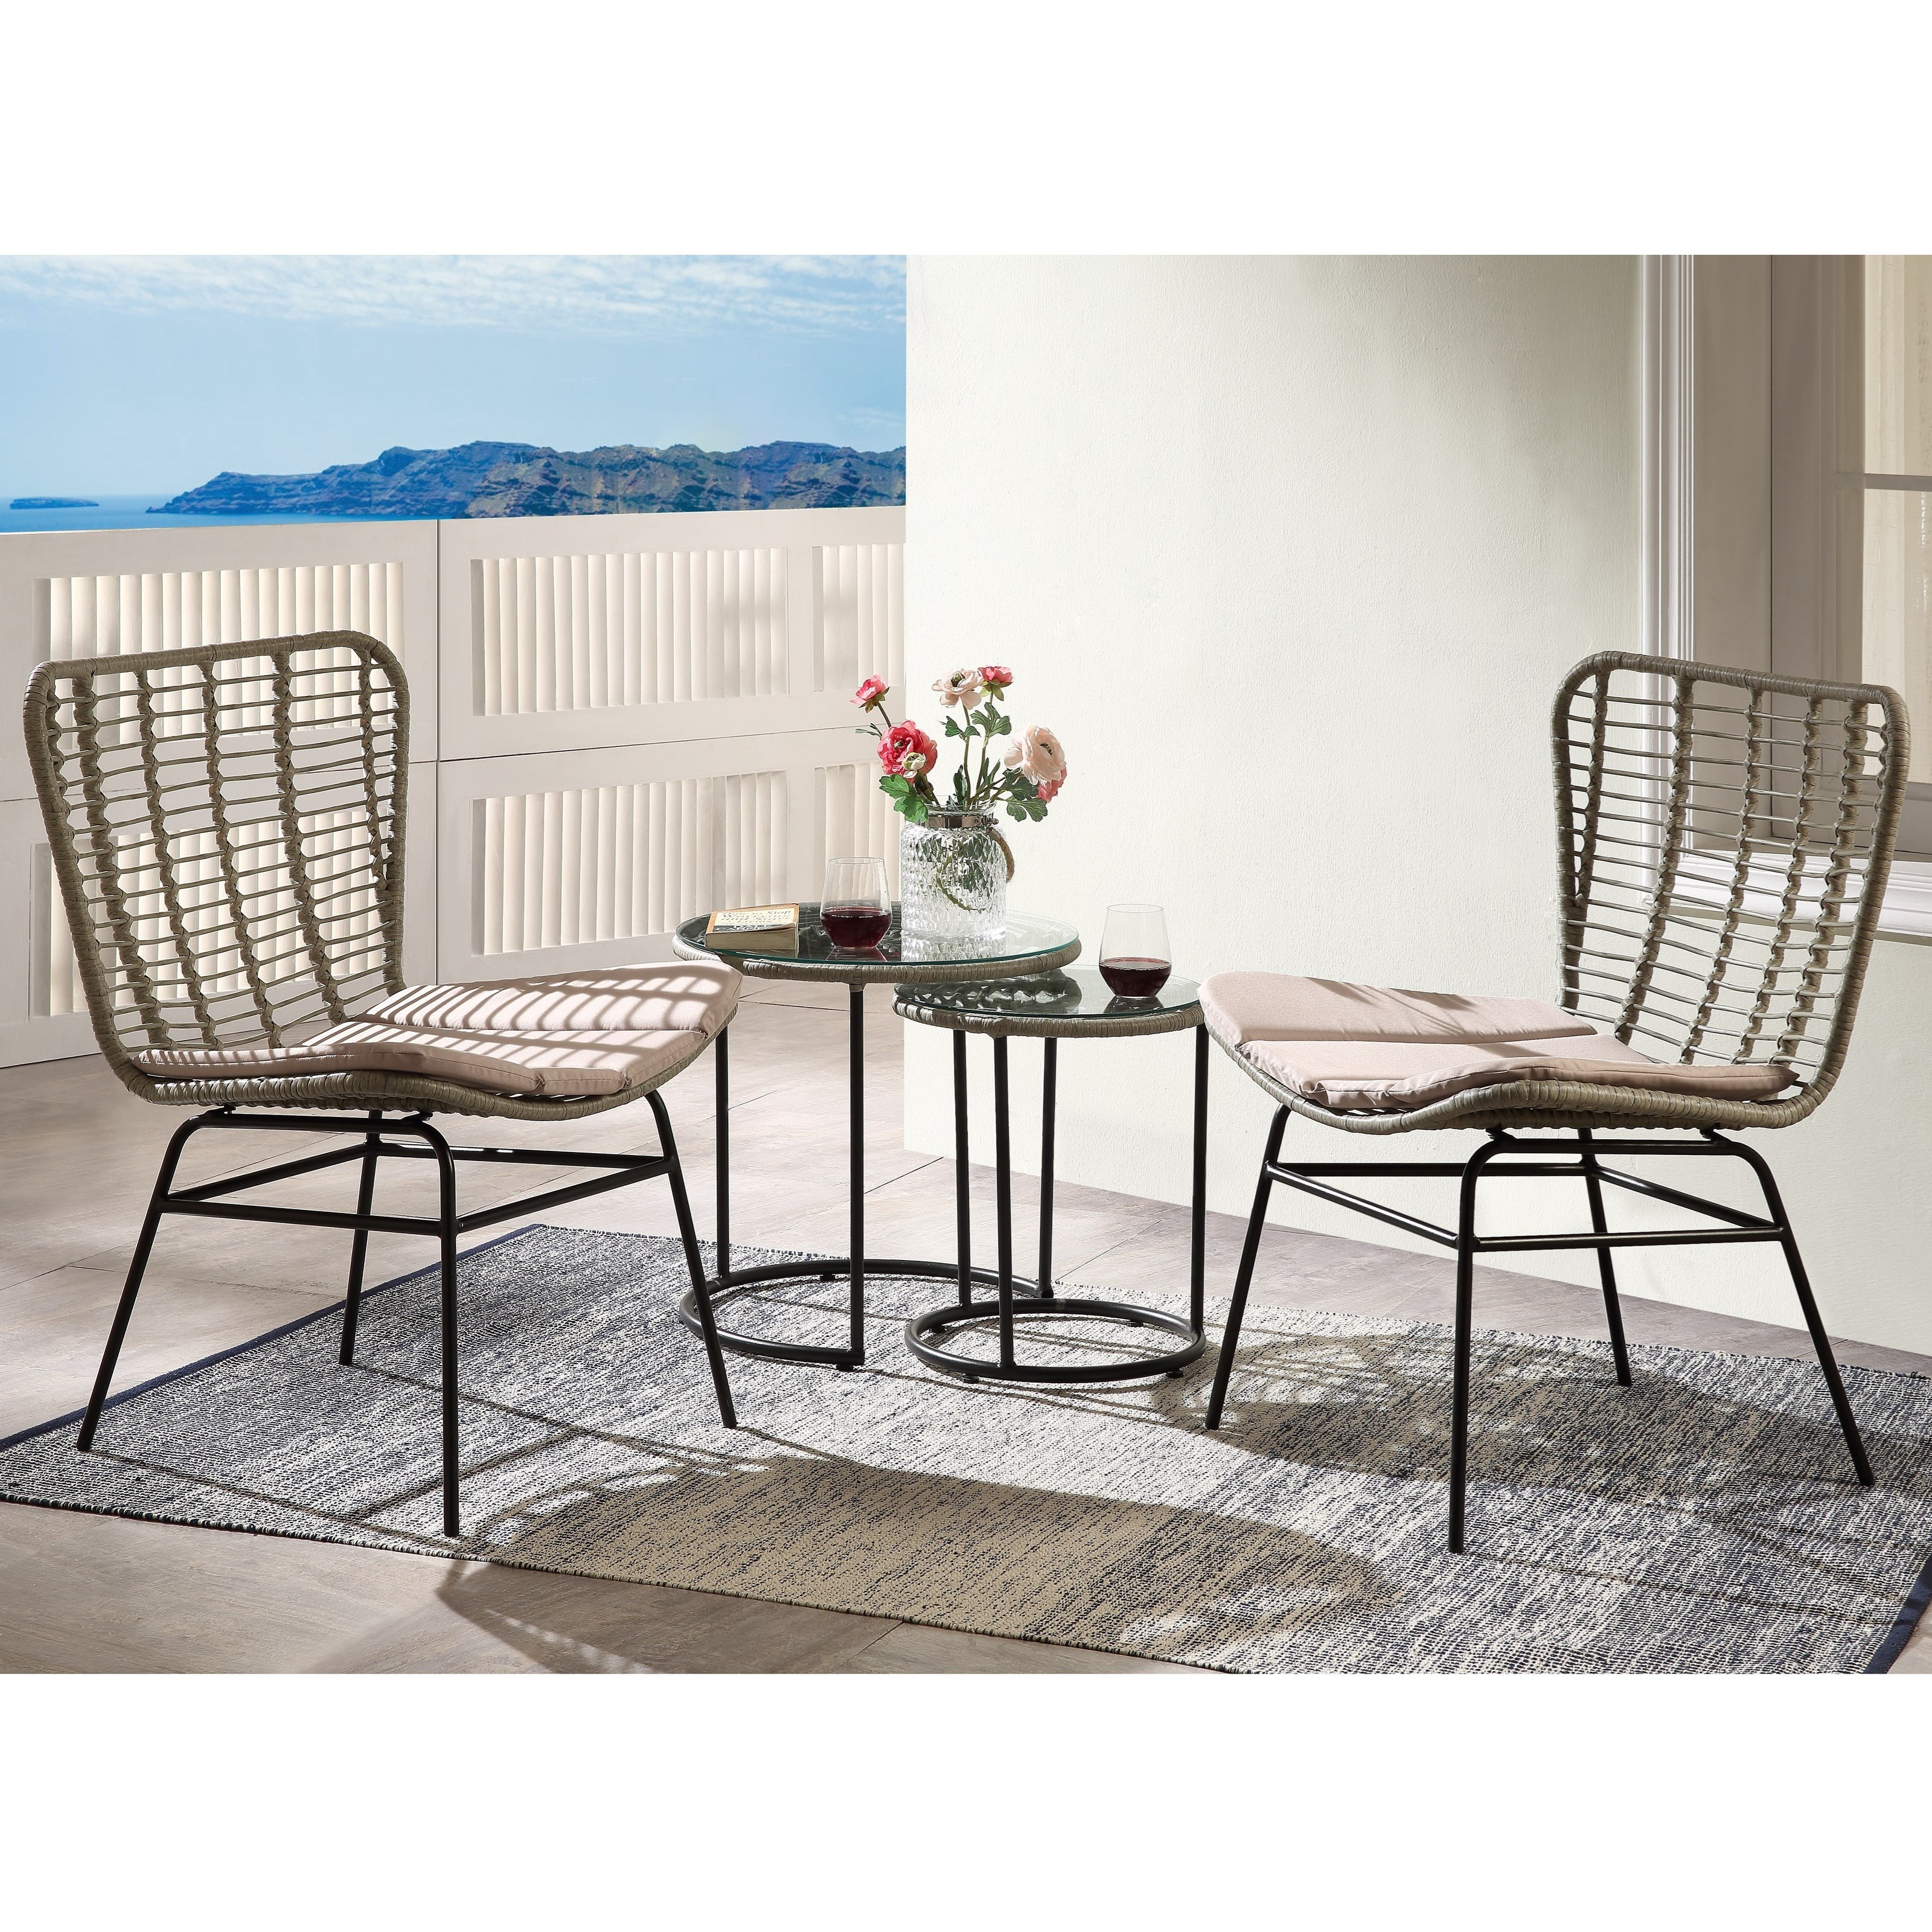 4Pc Patio Set